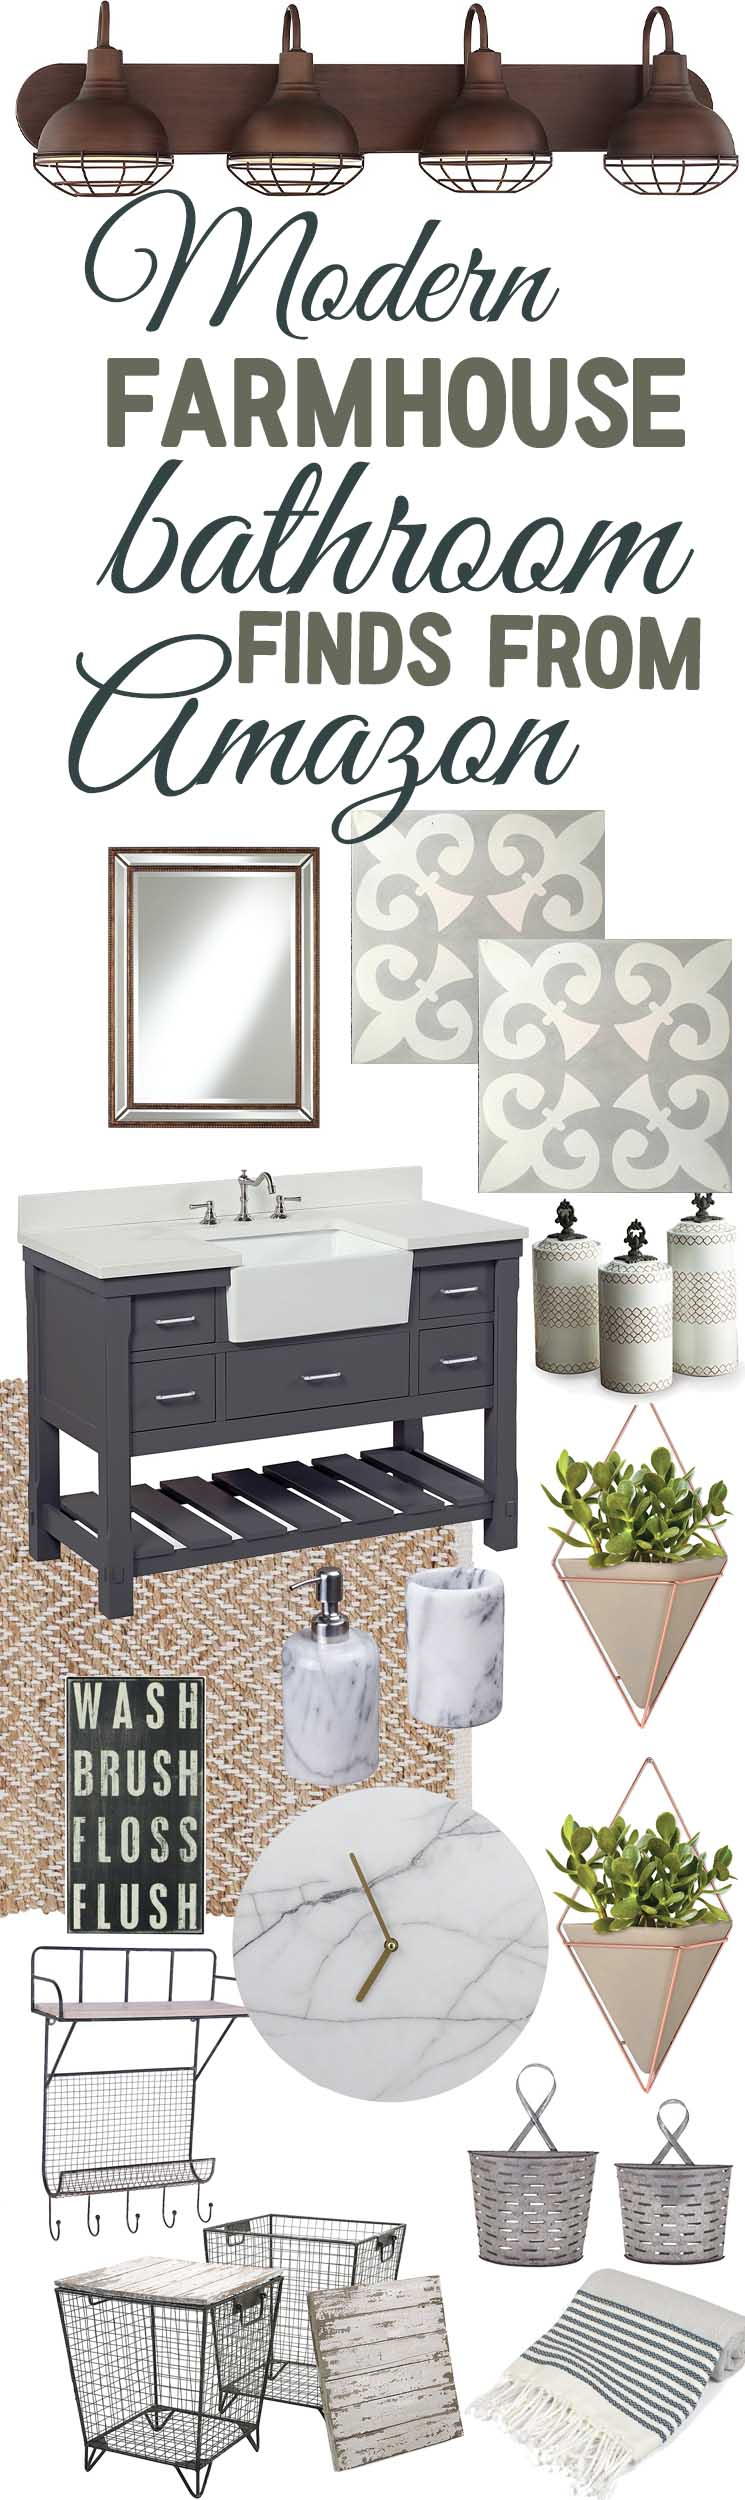 modern farmhouse bathroom dcor finds from amazon - Modern Farmhouse Bathroom